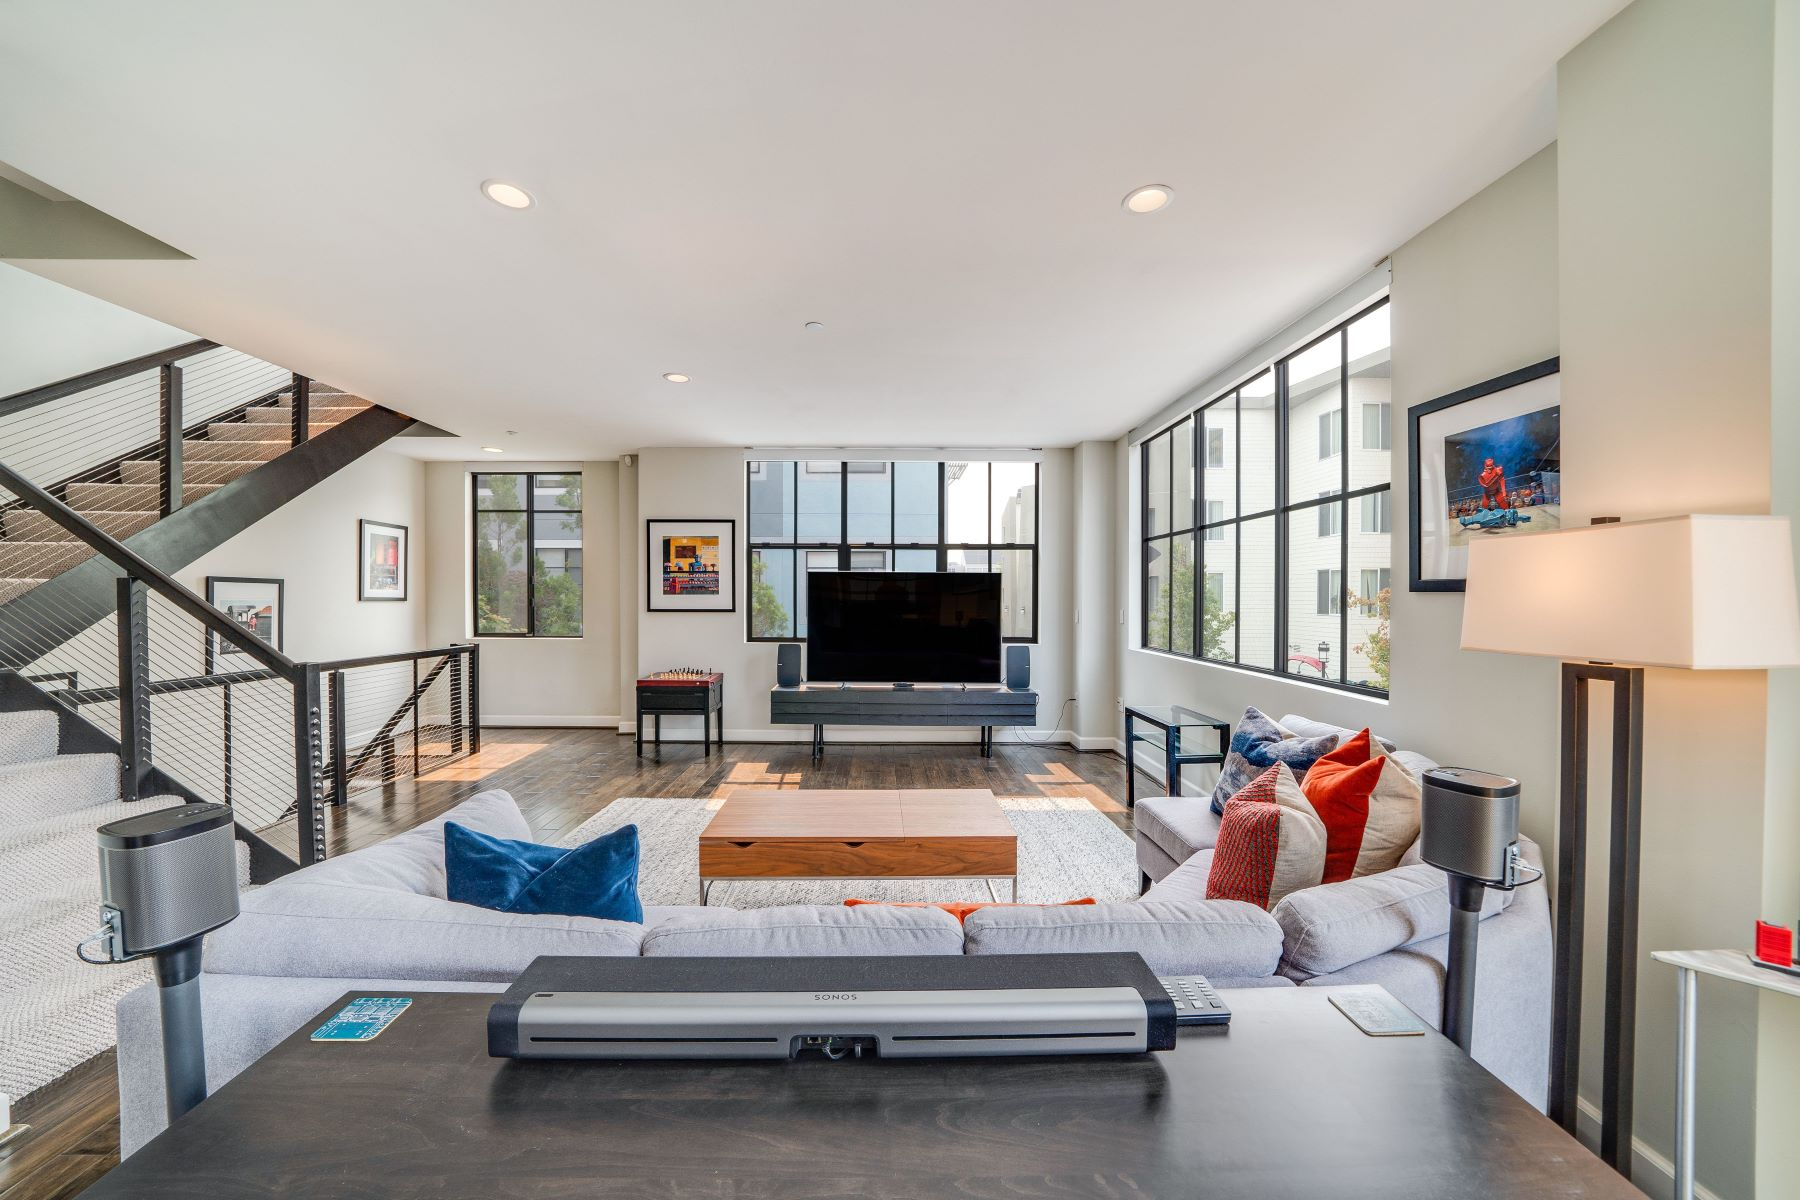 townhouses for Active at Palo Alto: Your Private Playground 800 High Street Palo Alto, California 94301 United States